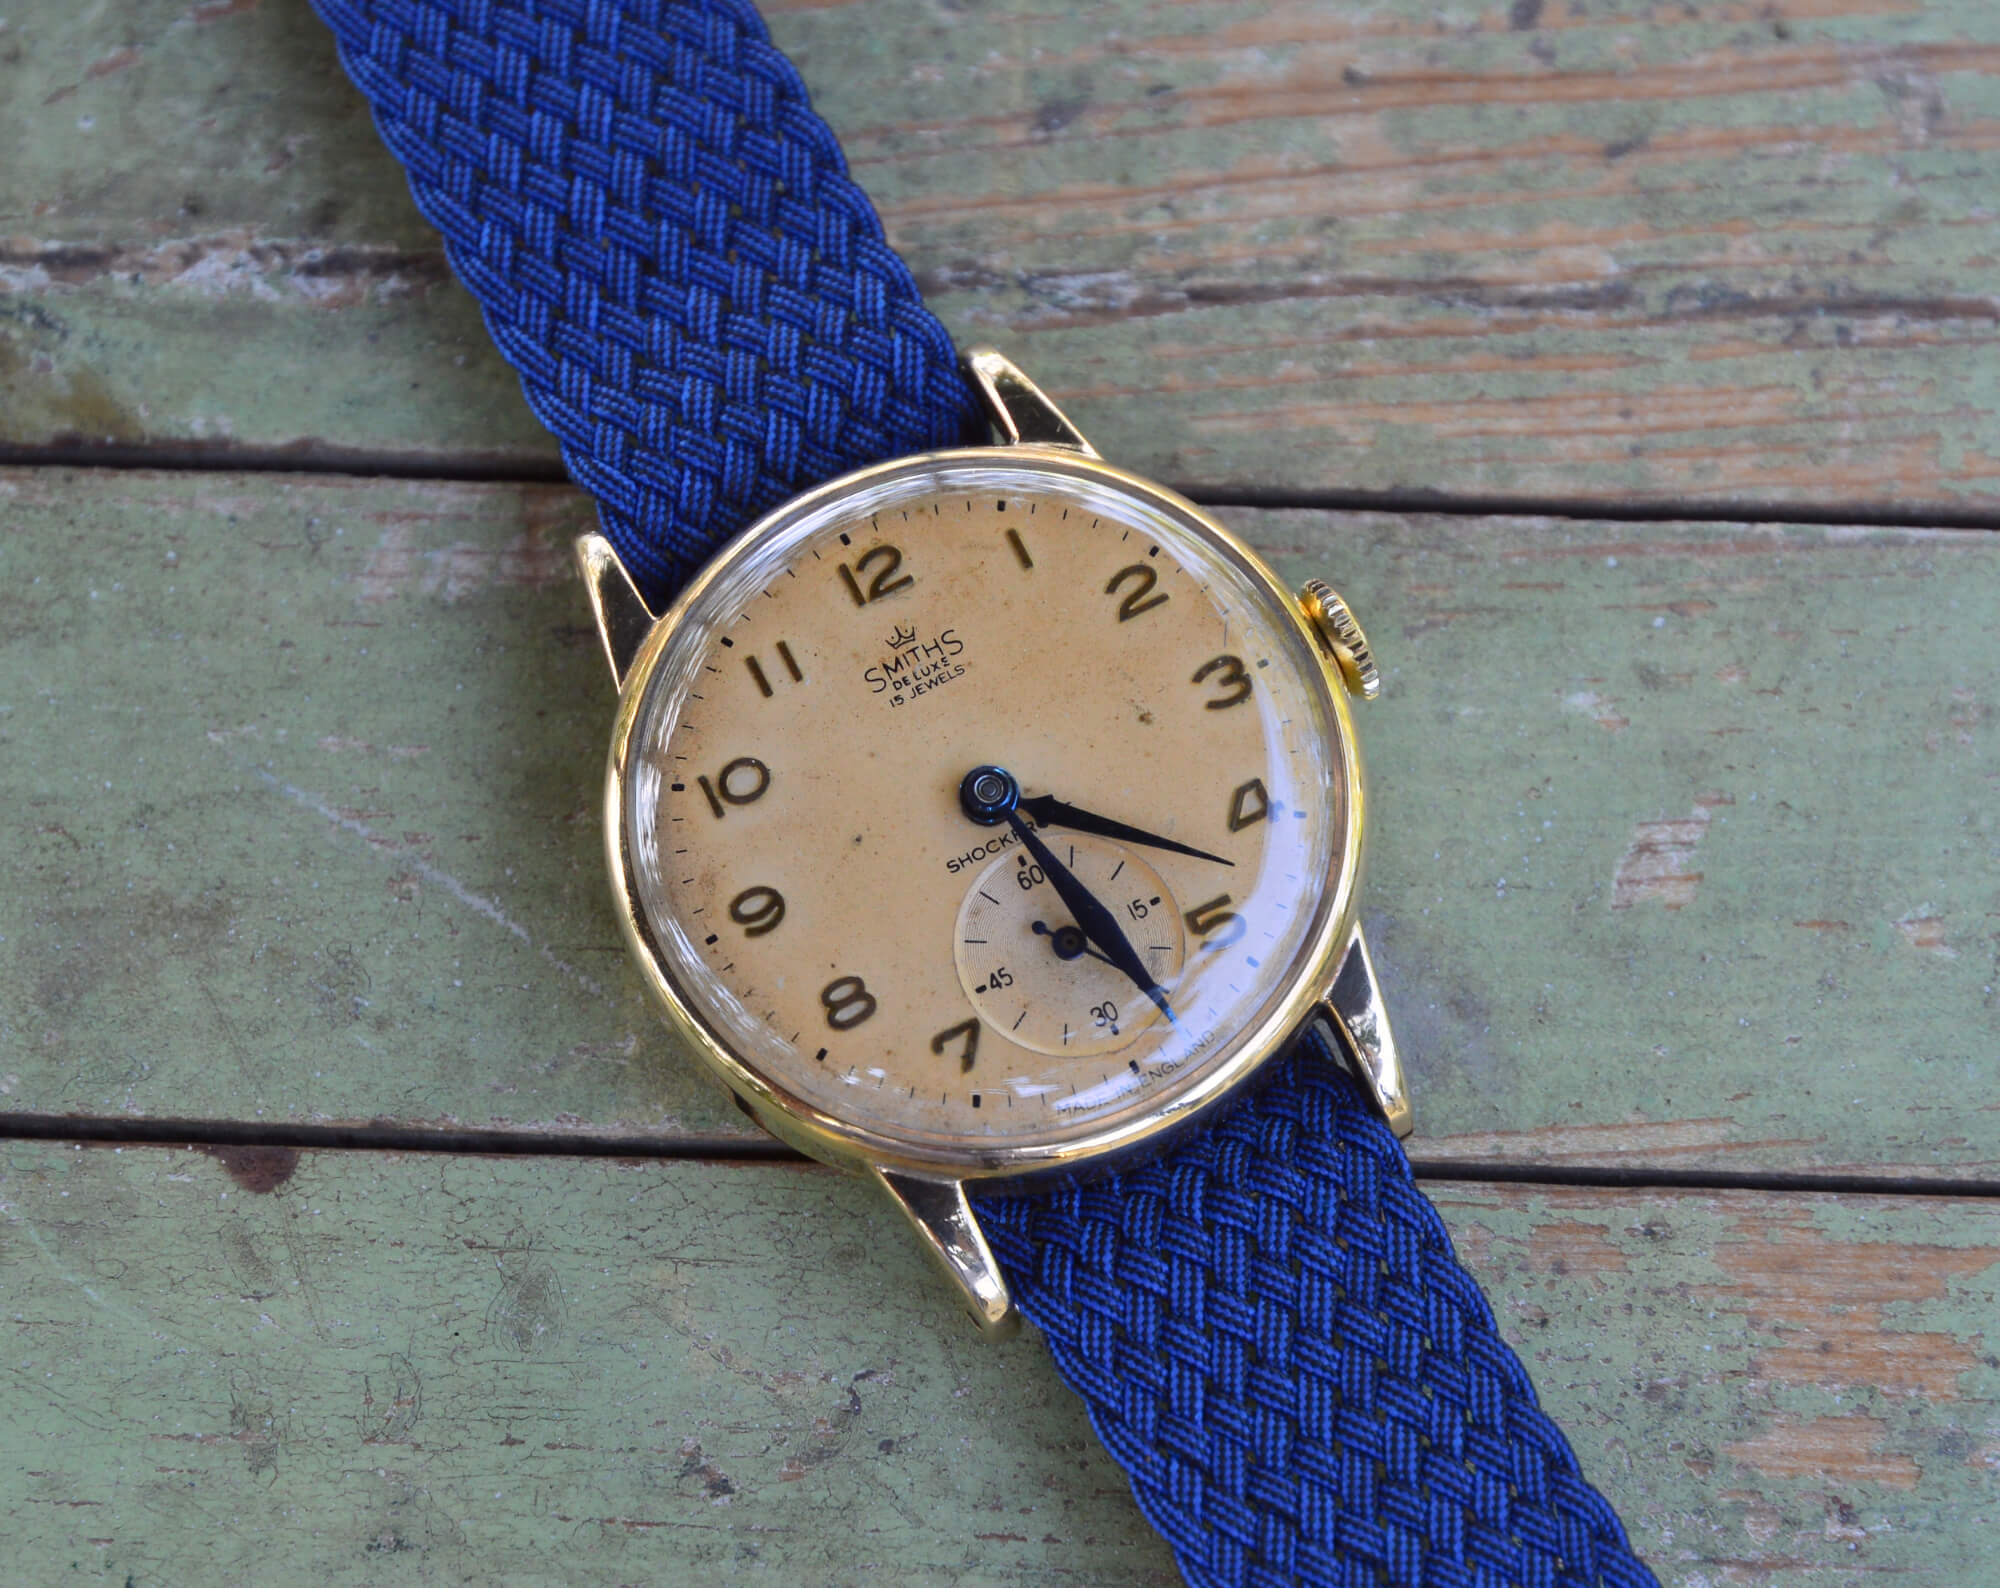 gold-case-watches-pt-2-08